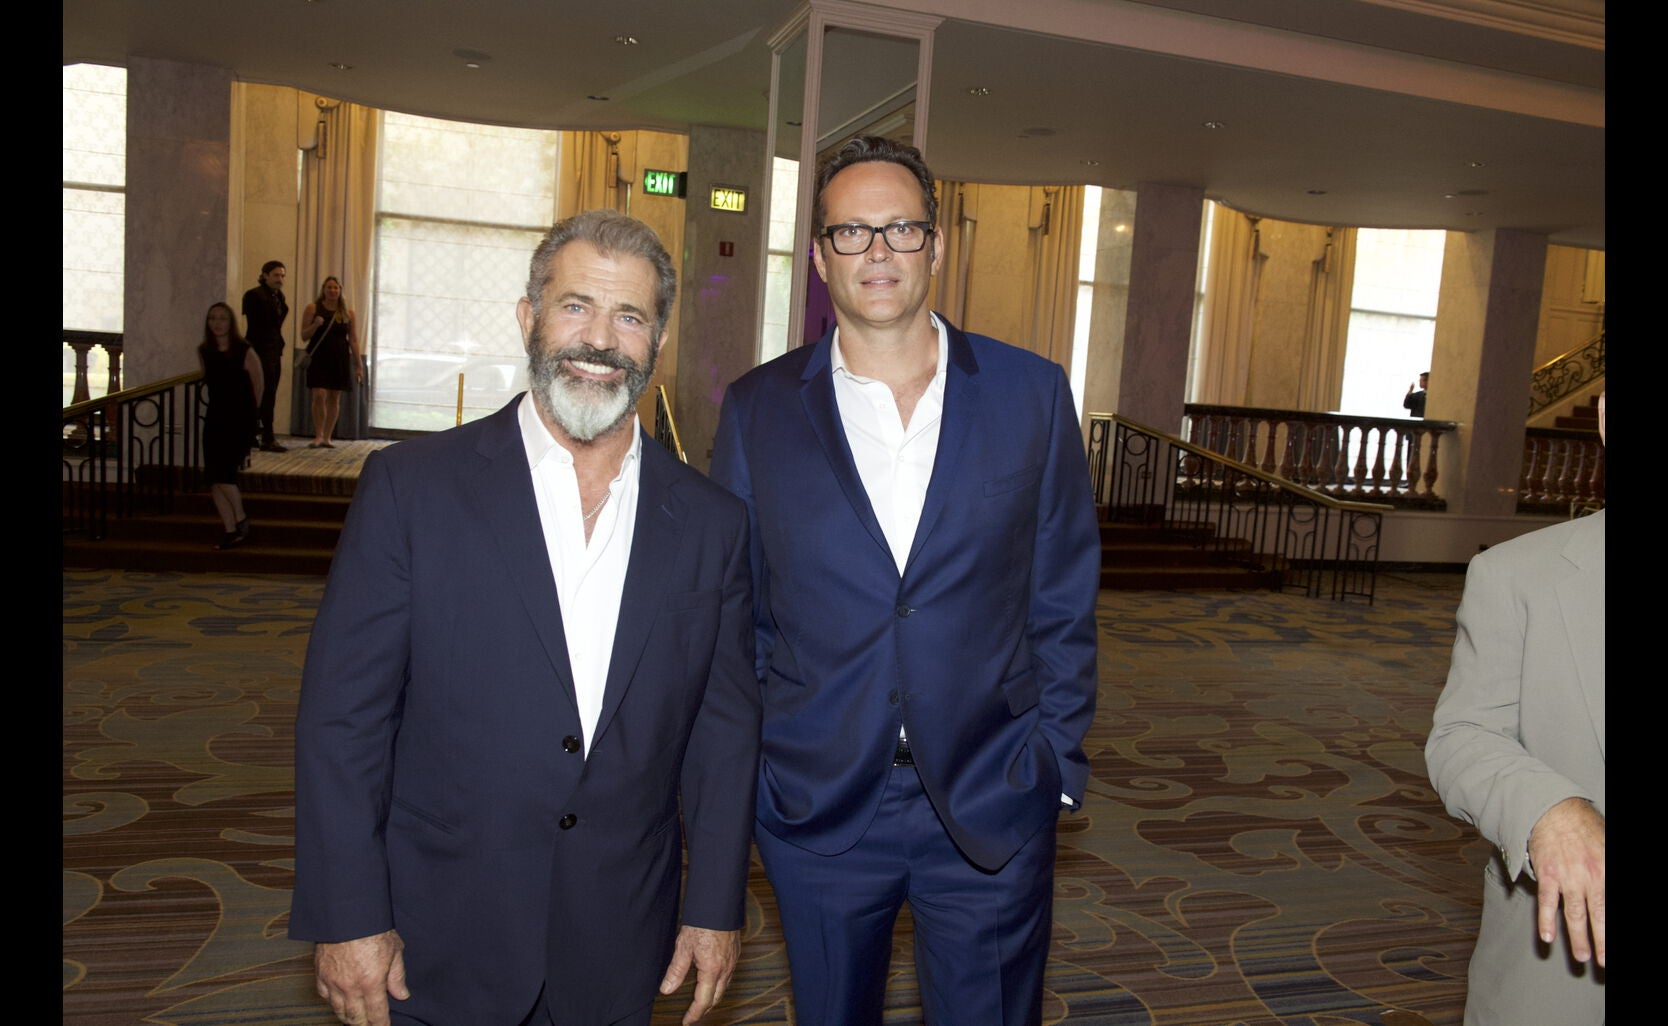 Mel Gibson and Vince Vaughn at the Annual Grants Dinner 2016